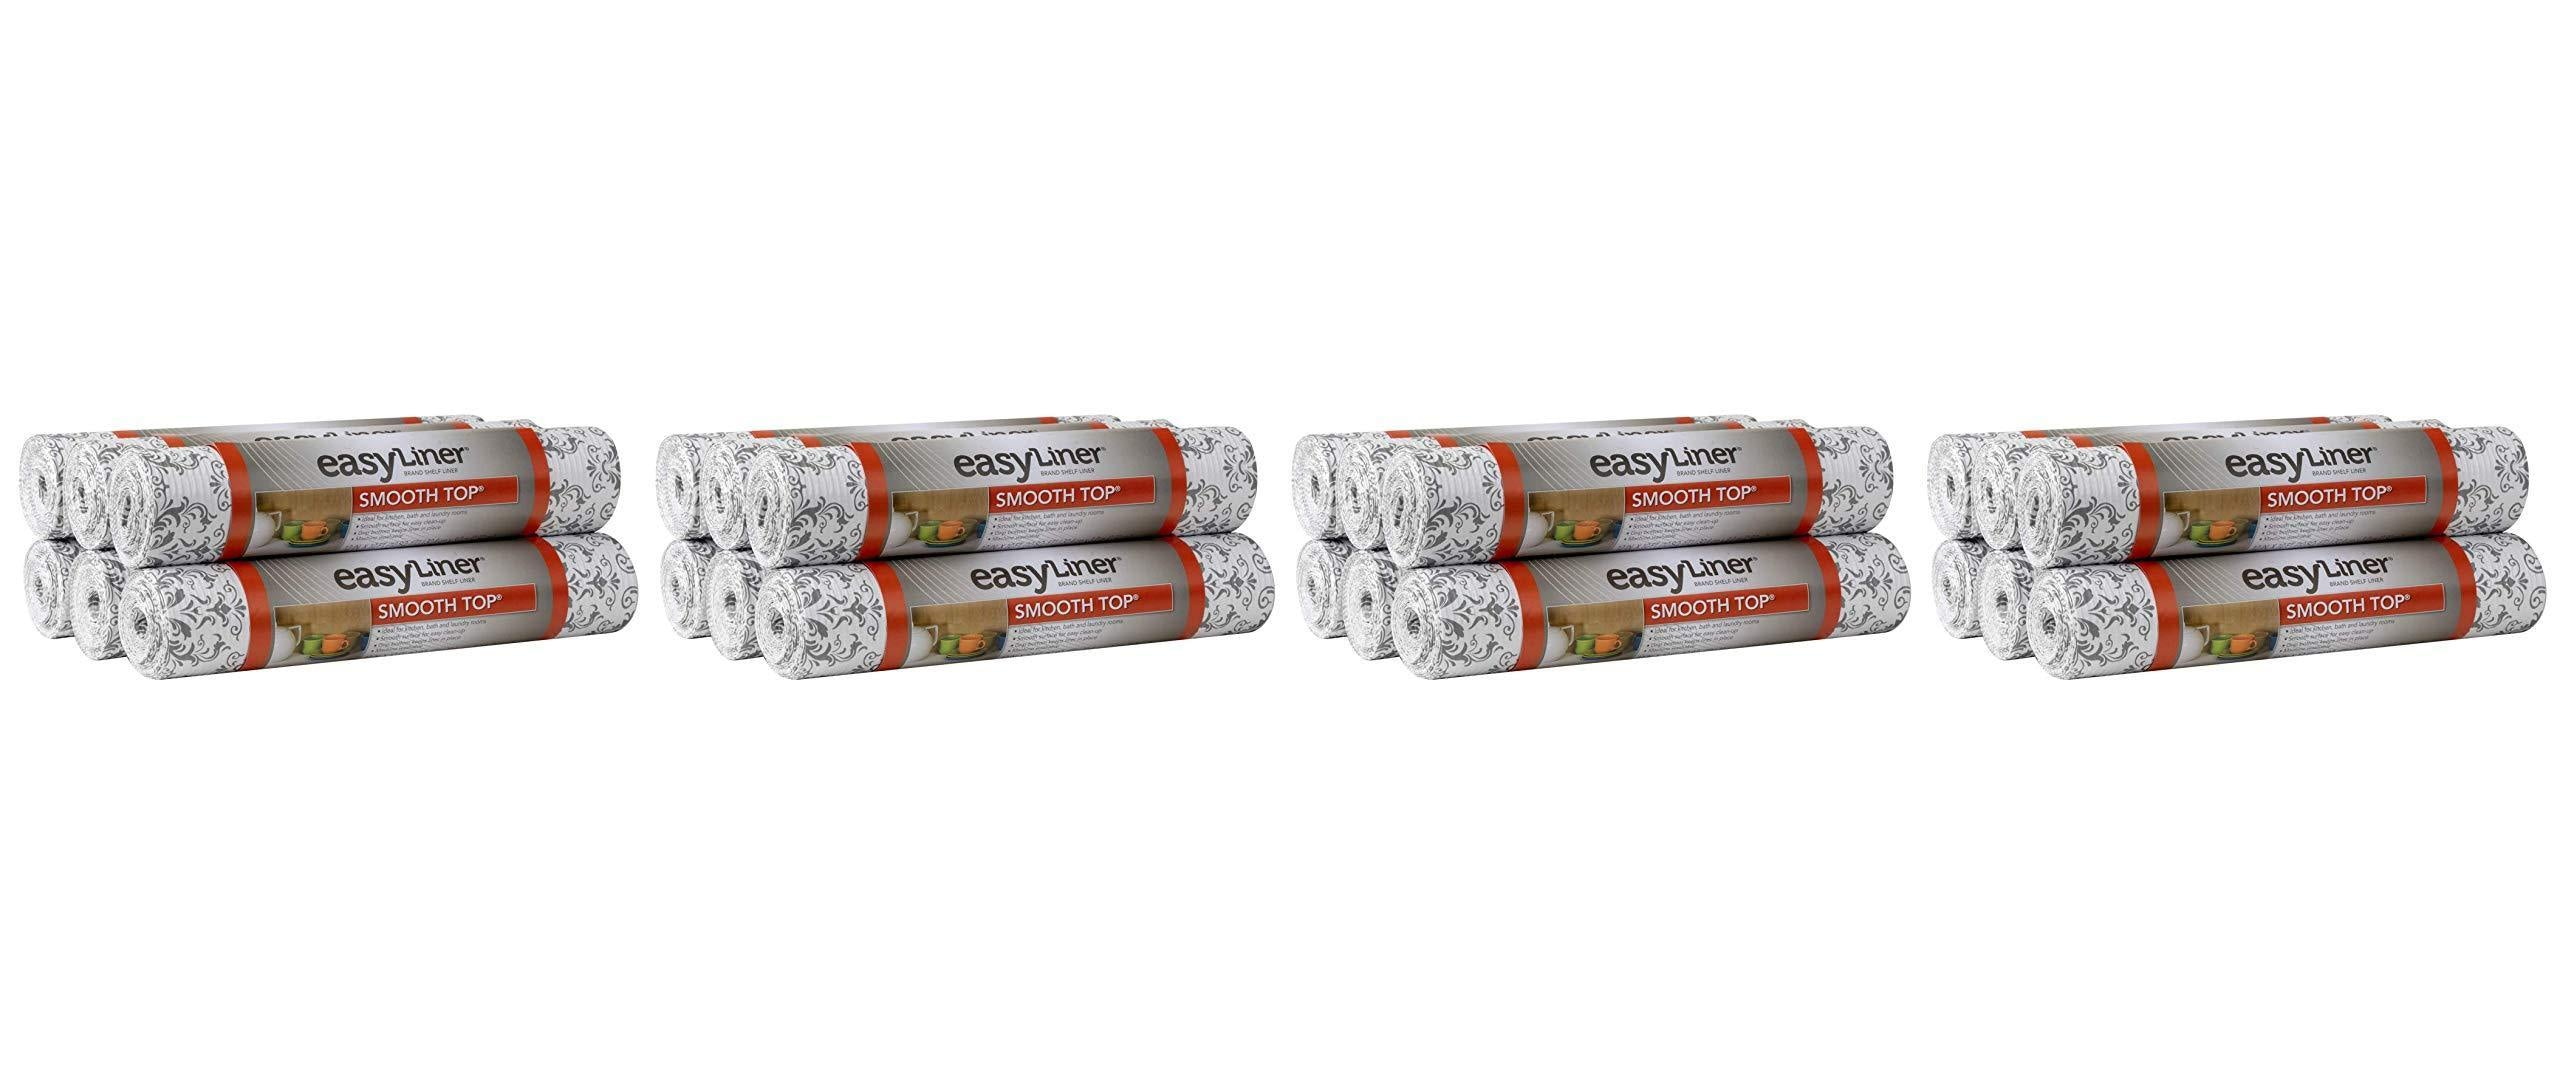 Storage duck smooth top easy liner shelf liner top cabinet multipack 6 rolls each 12 width 10 length grey damask fð¾ur ñ€ð°ñ�k